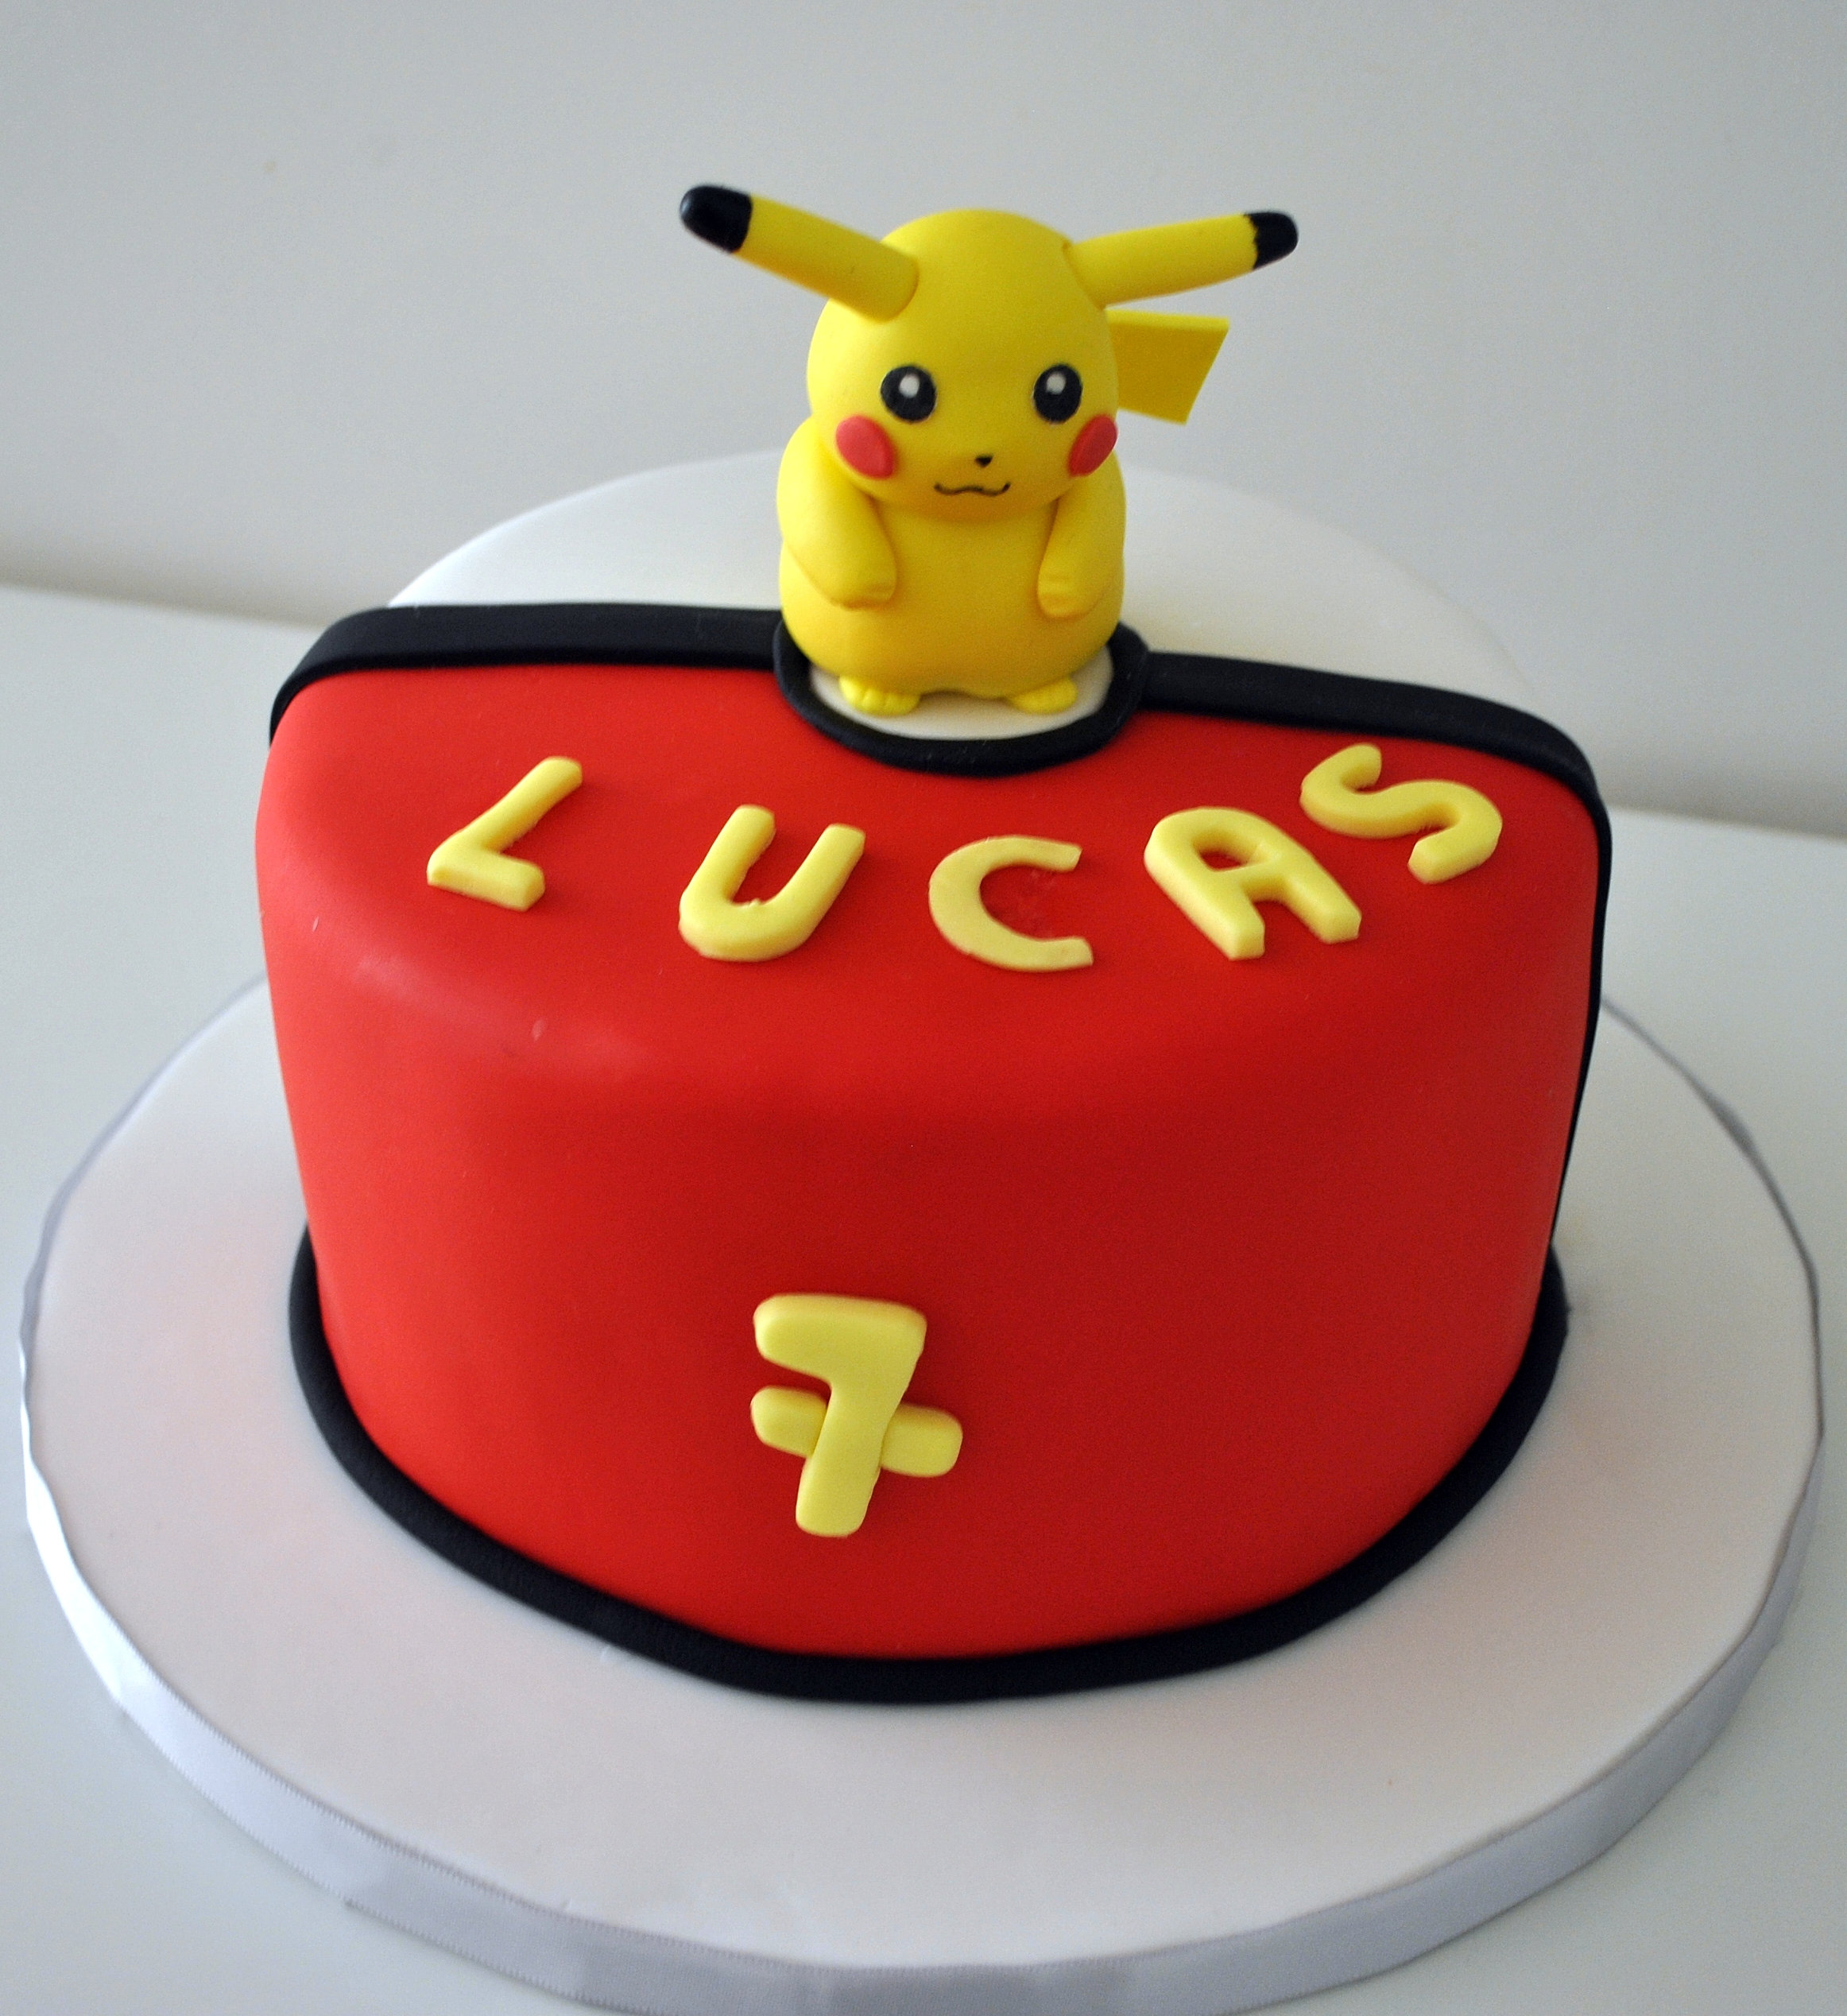 Cake Design Toulouse : Pikachu Cake - Hot Girls Wallpaper